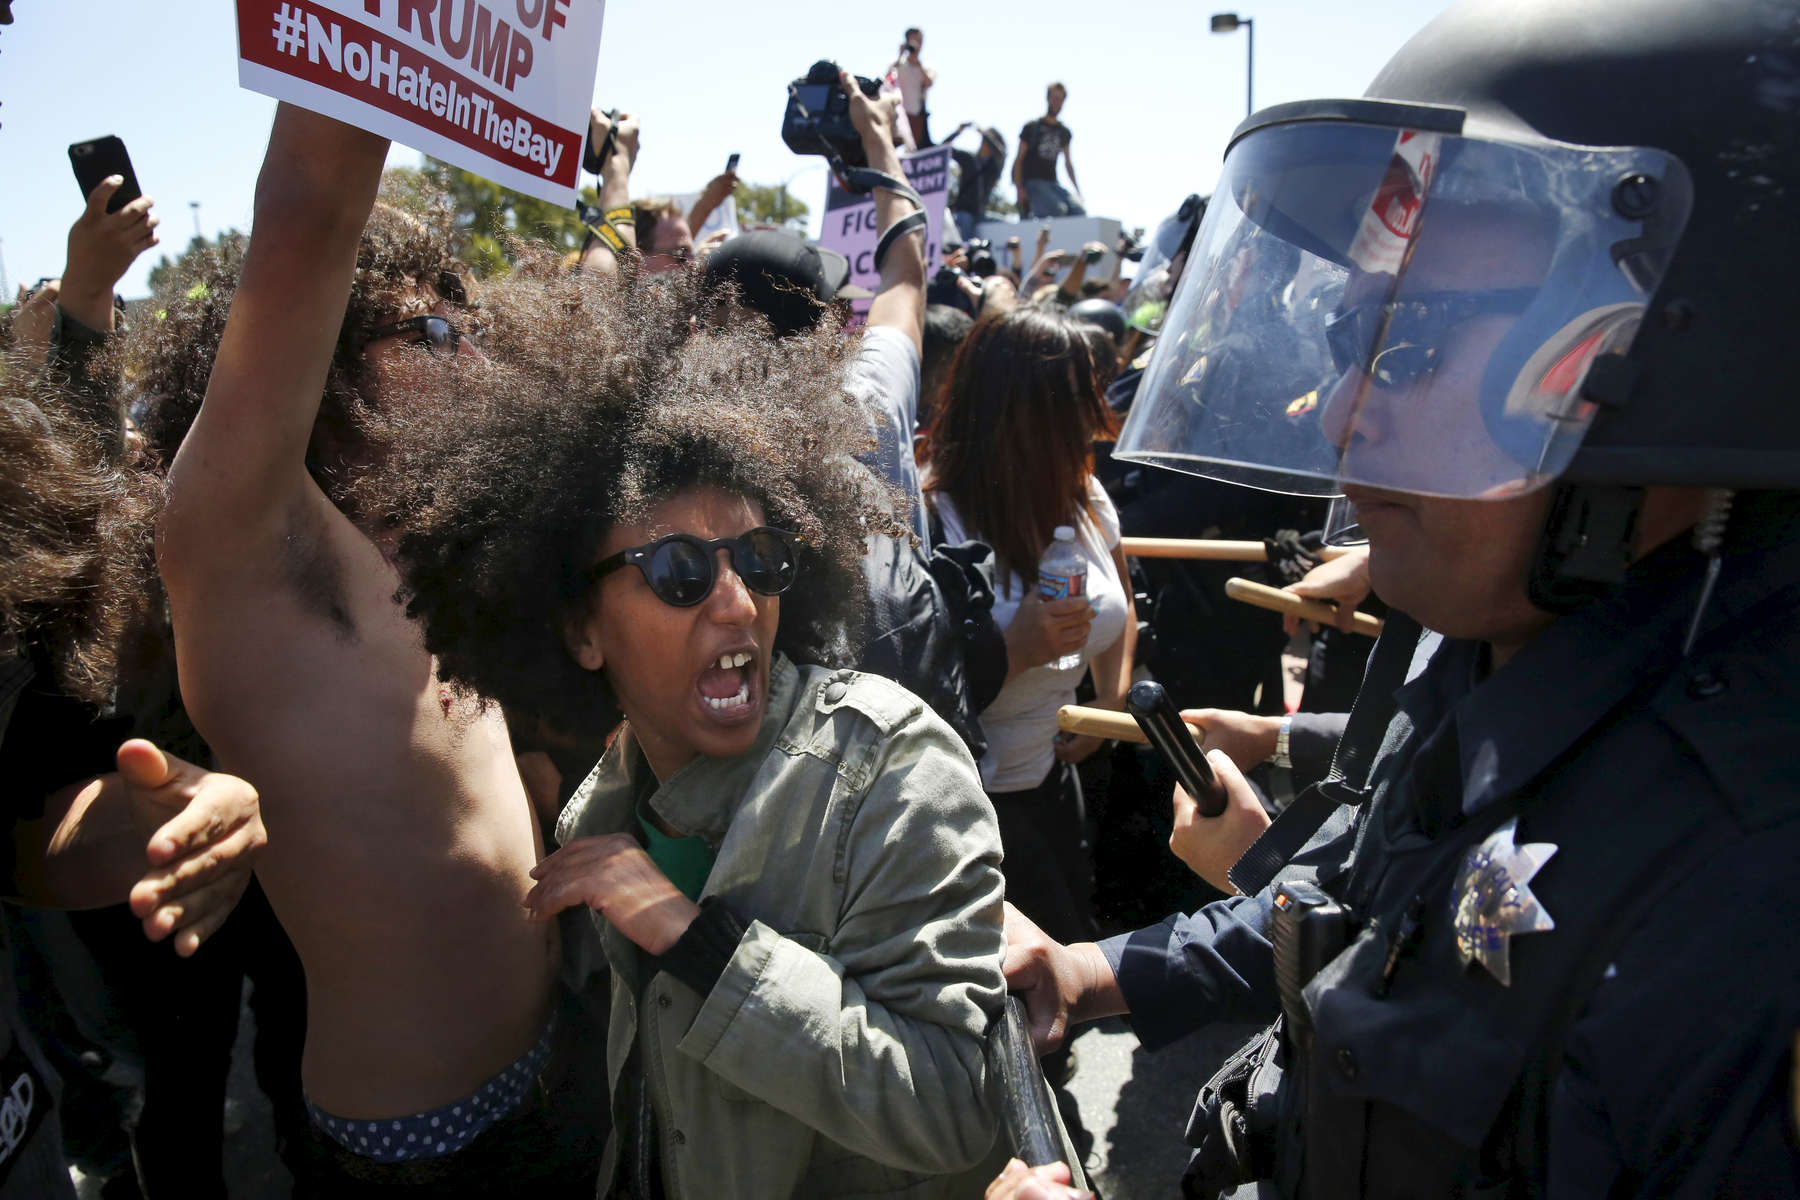 Biseat Yawkal, an Oakland protester, yells as she is pushed by police trying to push protesters back outside of the Hyatt Regency during the first day of the California Republican Party Convention in Burlingame, Calif., Thursday, April 29, 2016. The convention featured speeches from Presidential candidates Donald Trump and John Kasich among others. (Leah Millis/San Francisco Chronicle via AP) MANDATORY CREDIT